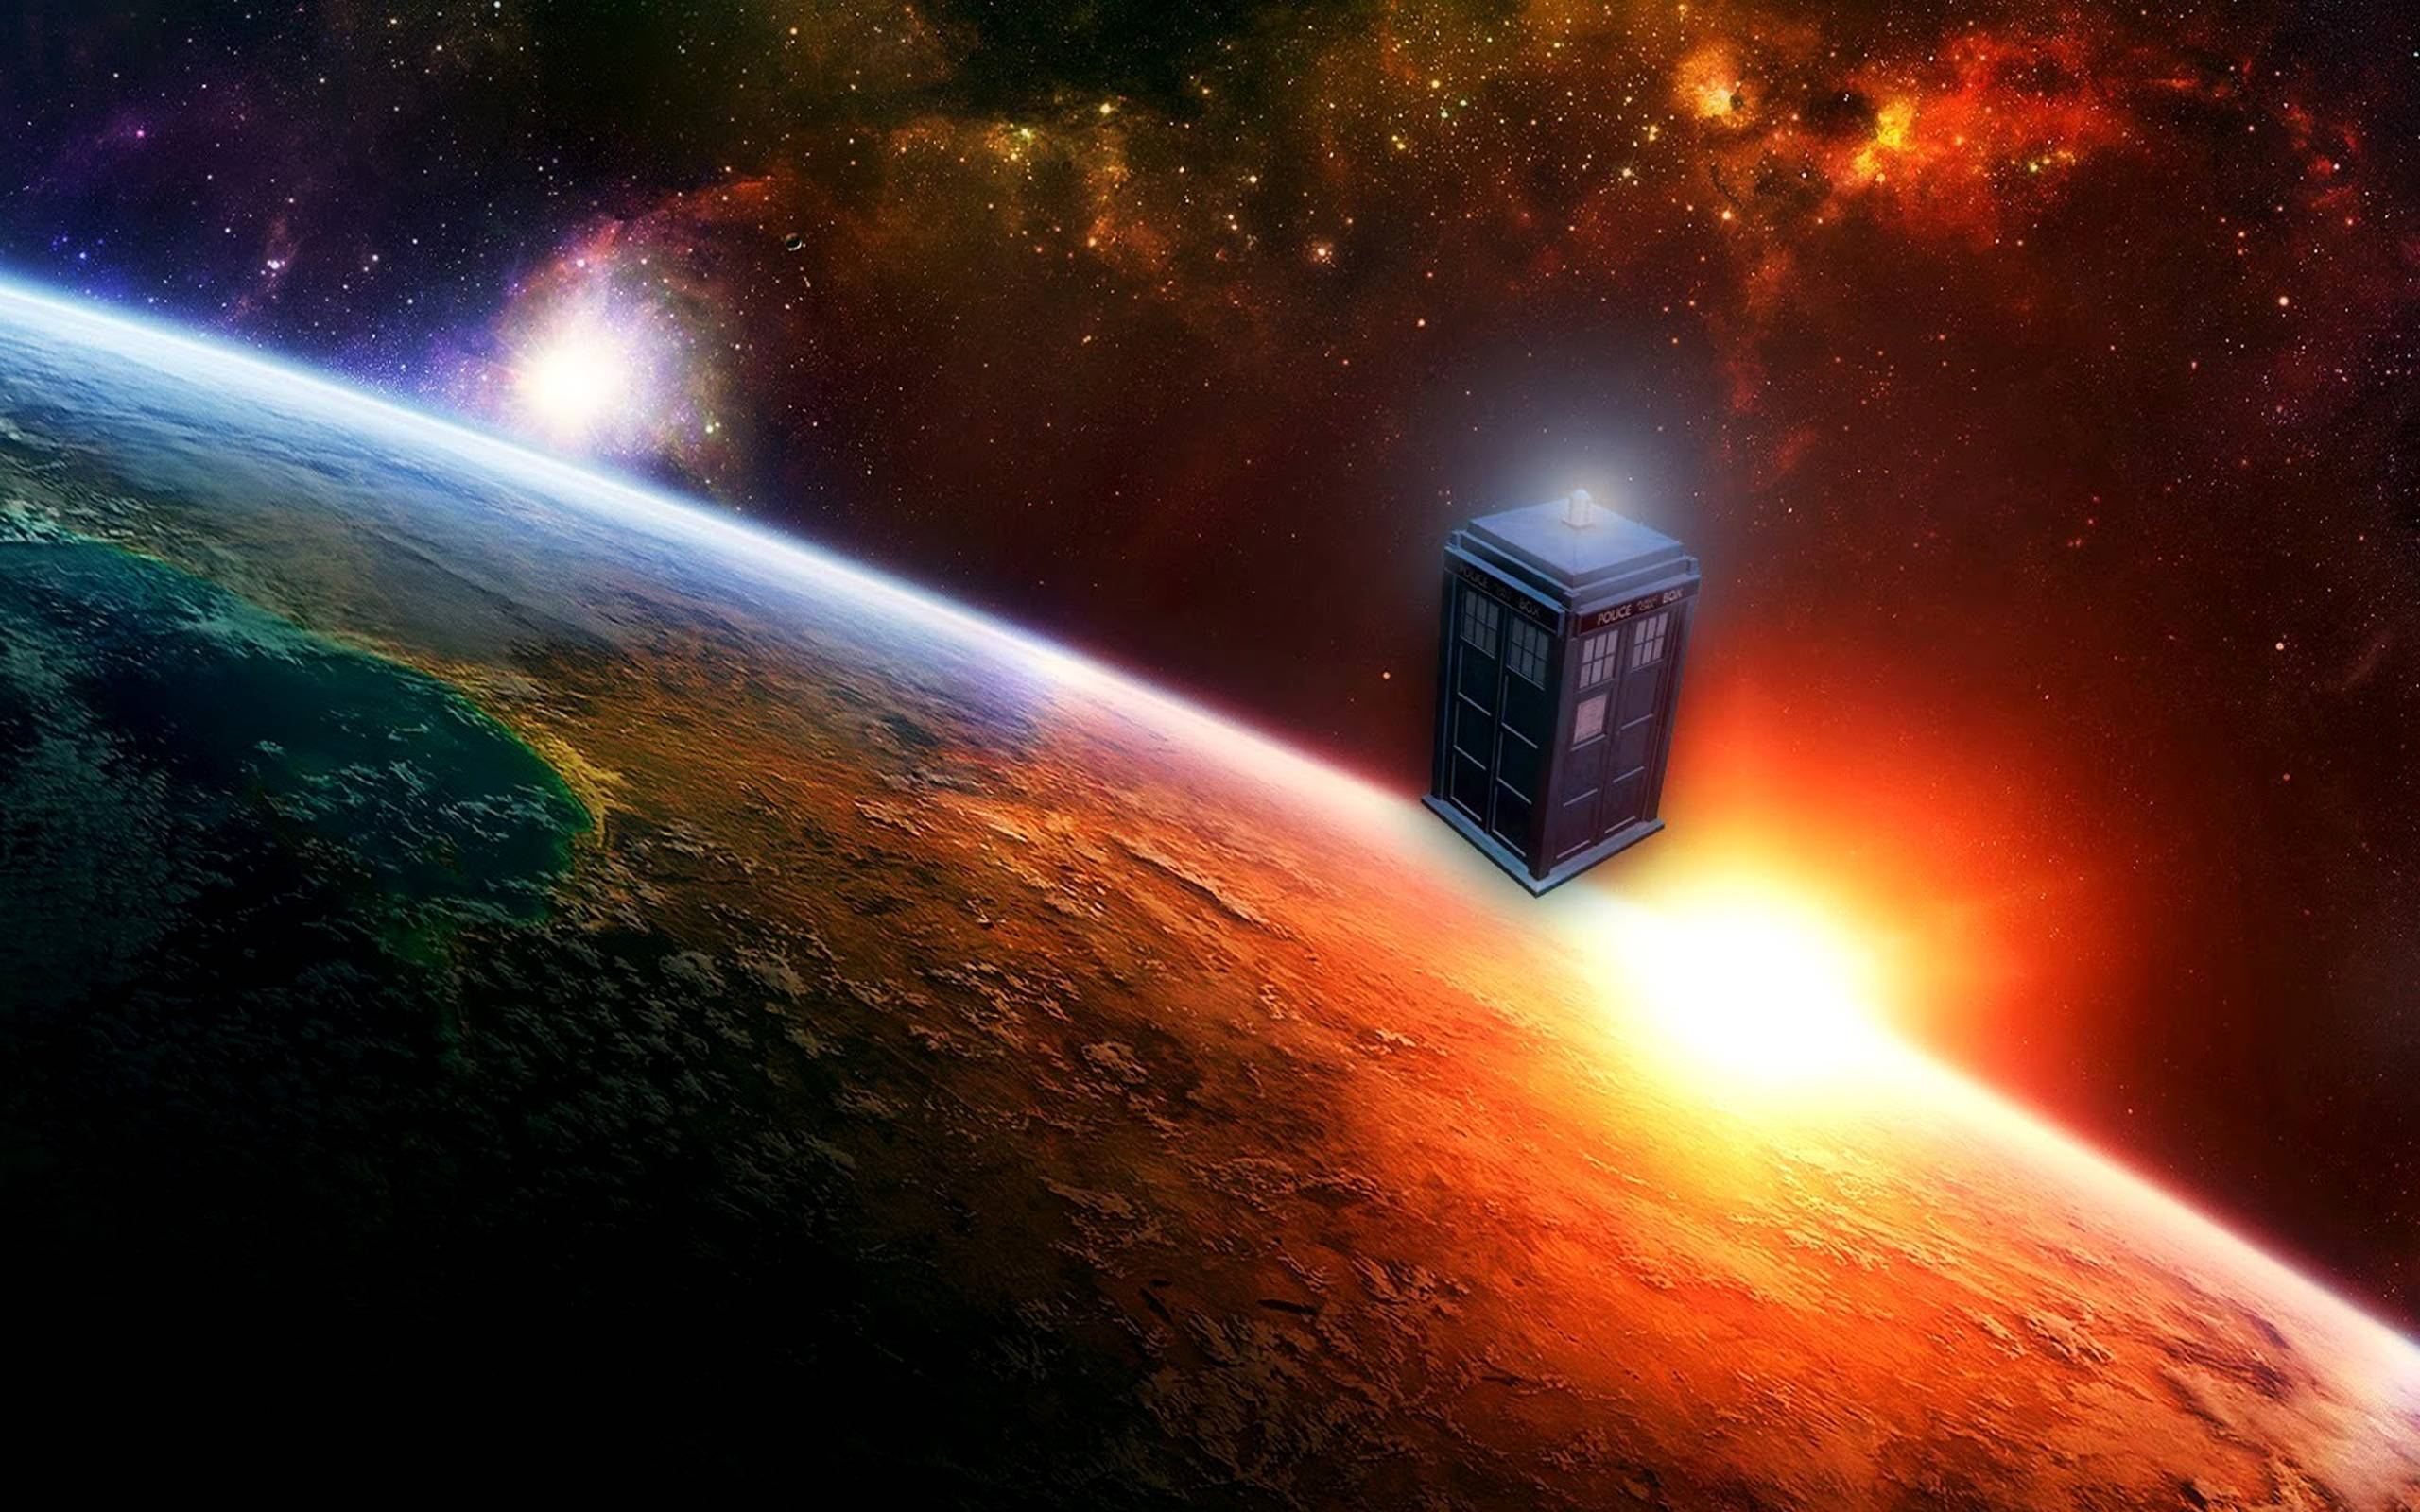 tardis images hd wallpaper - photo #9